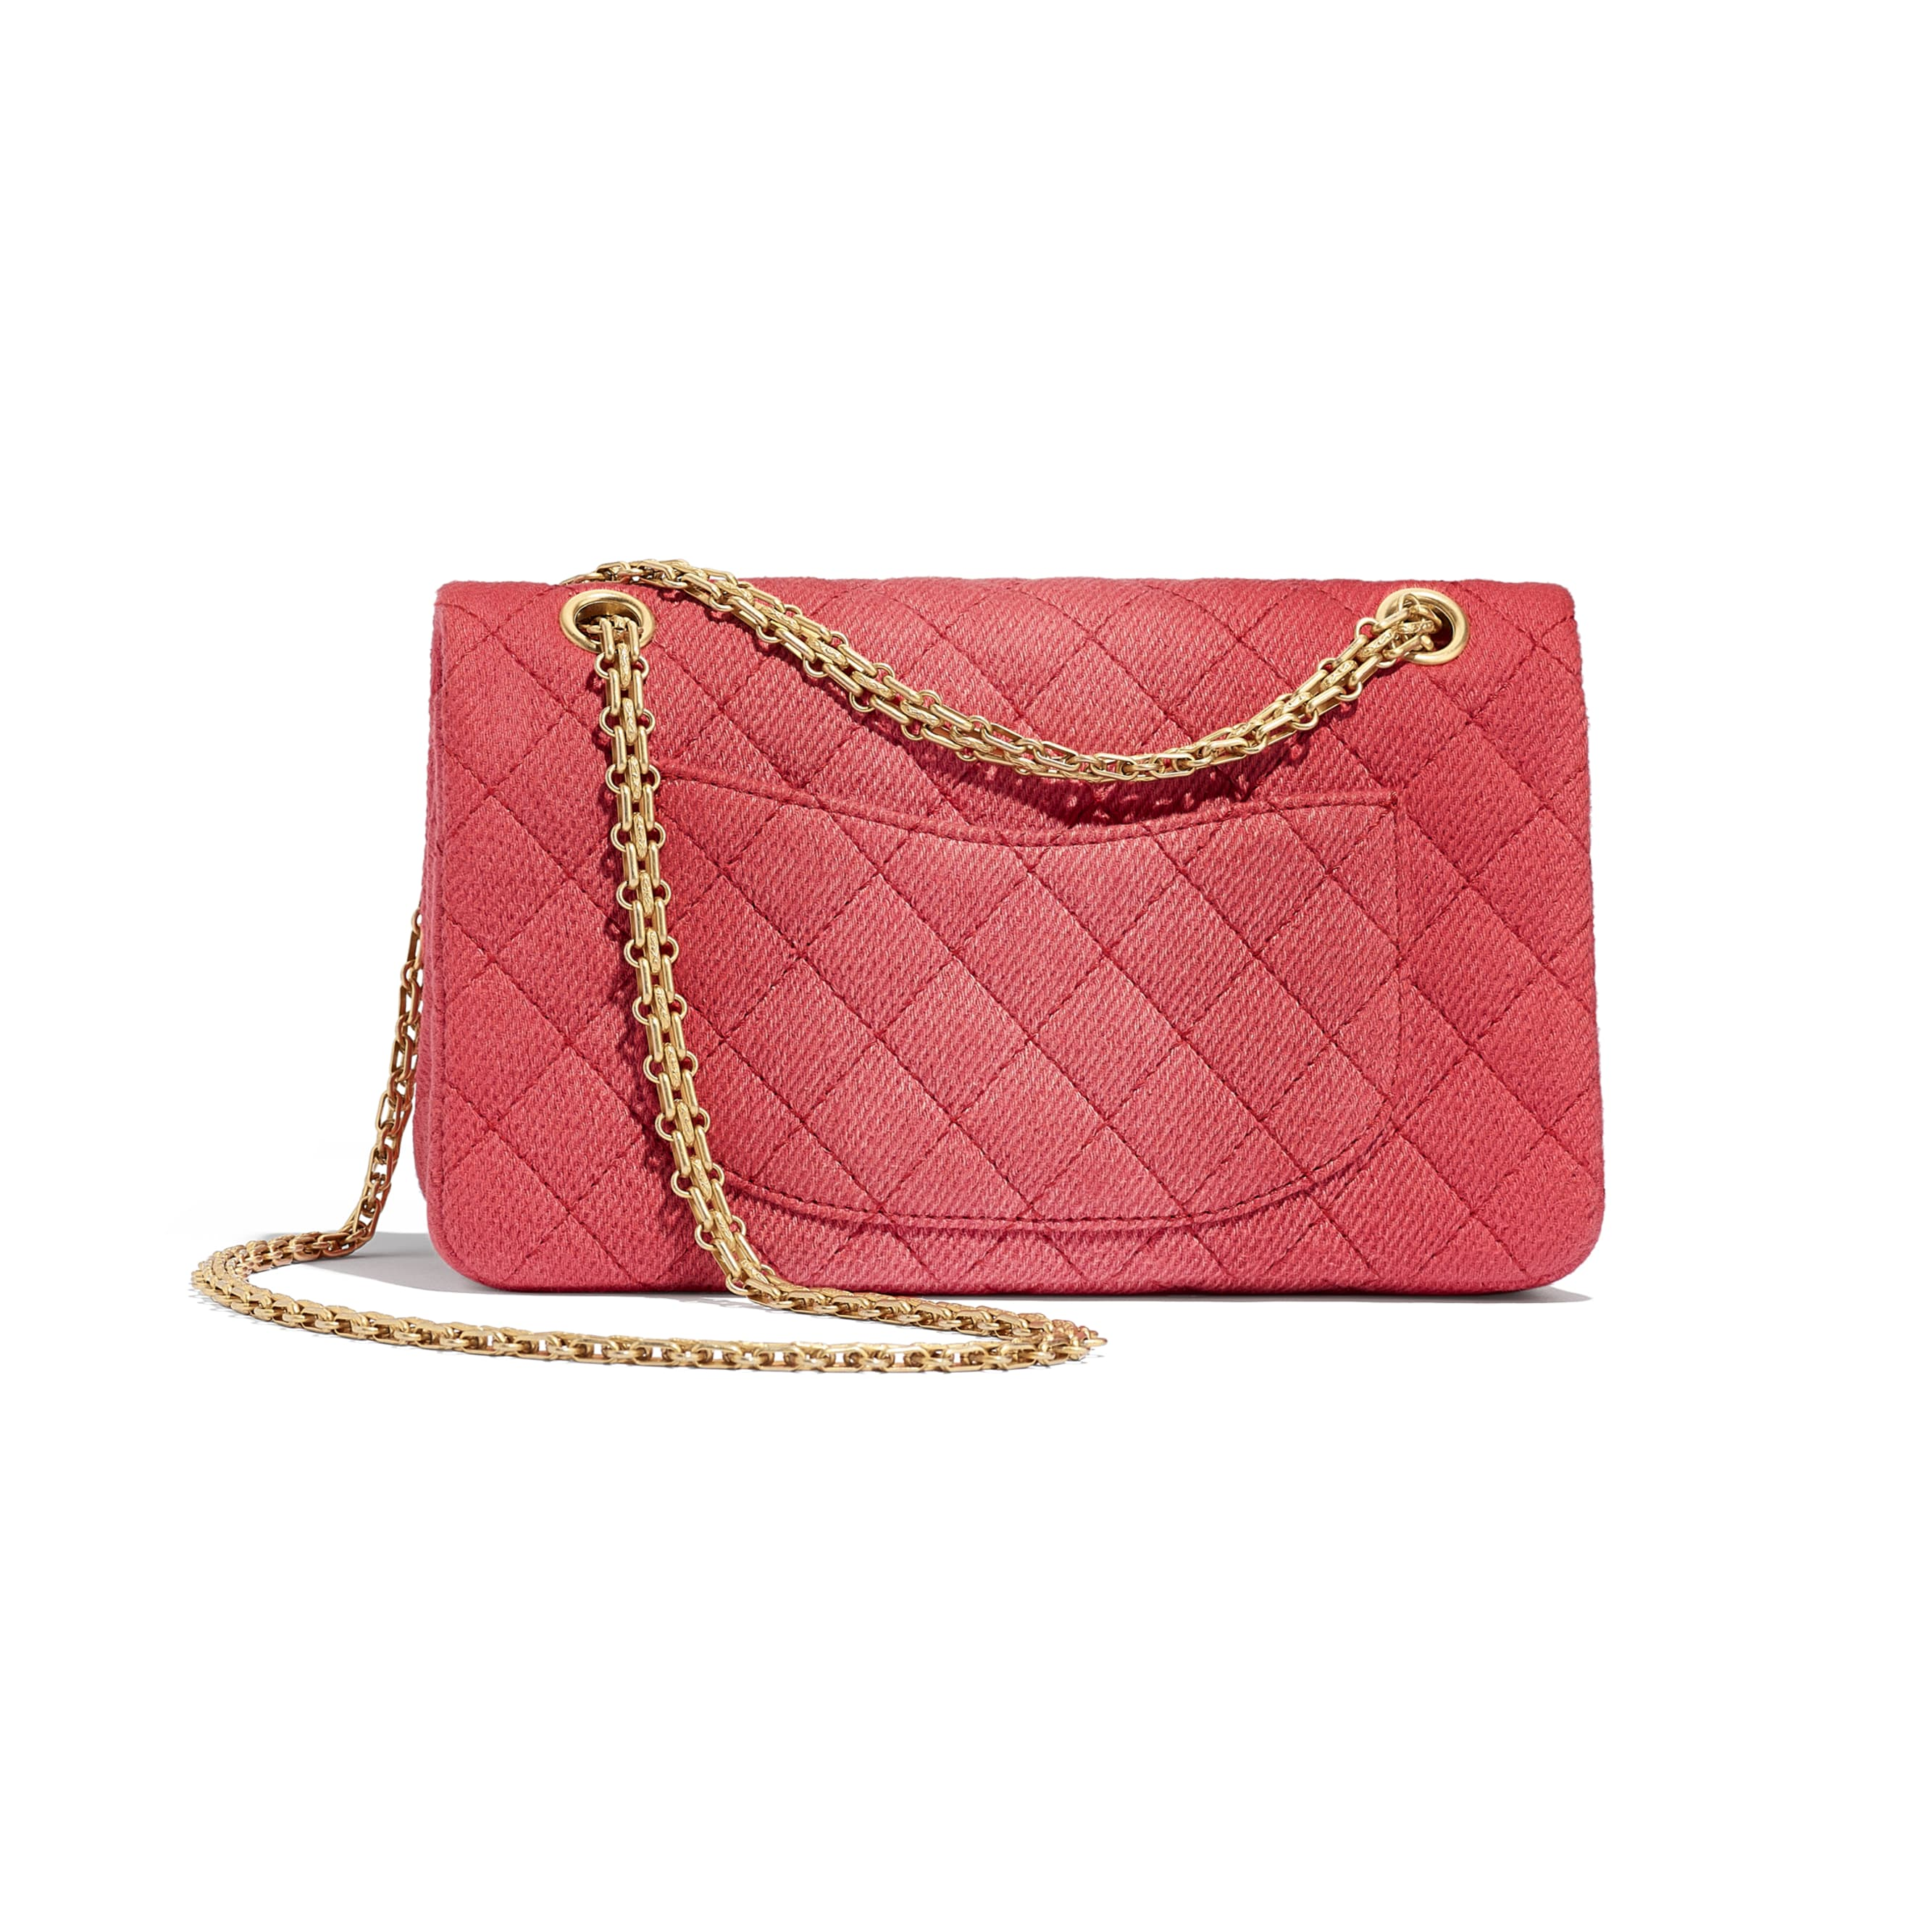 2.55 Handbag - Coral - Denim & Gold Metal - CHANEL - Alternative view - see standard sized version